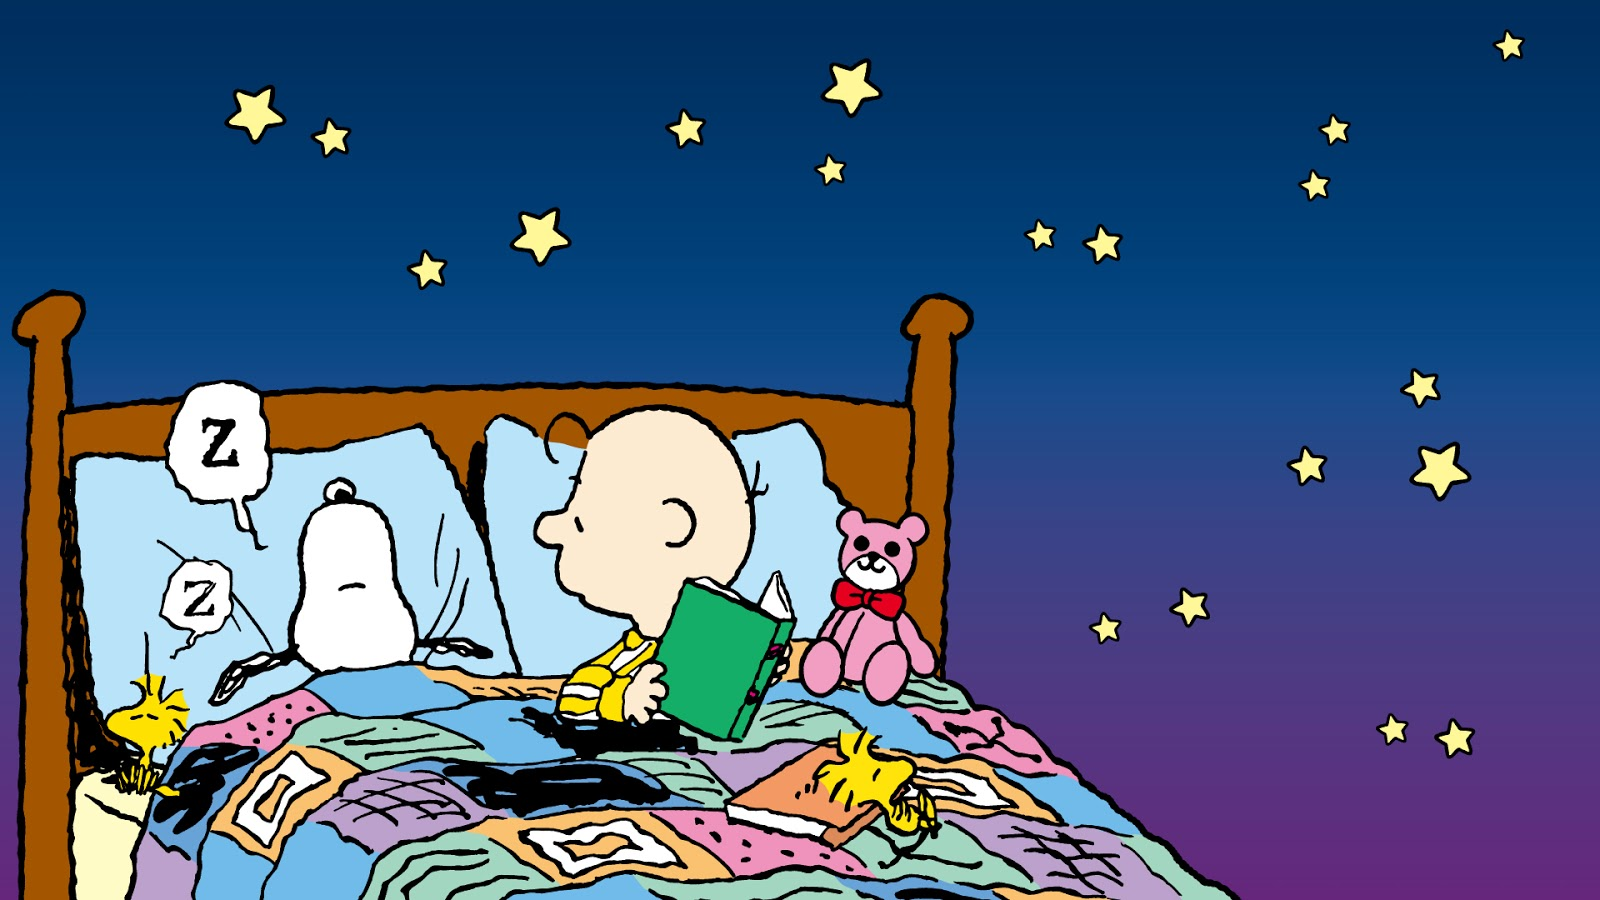 Snoopy duerme Charlie Brown lo contempla 1600x900